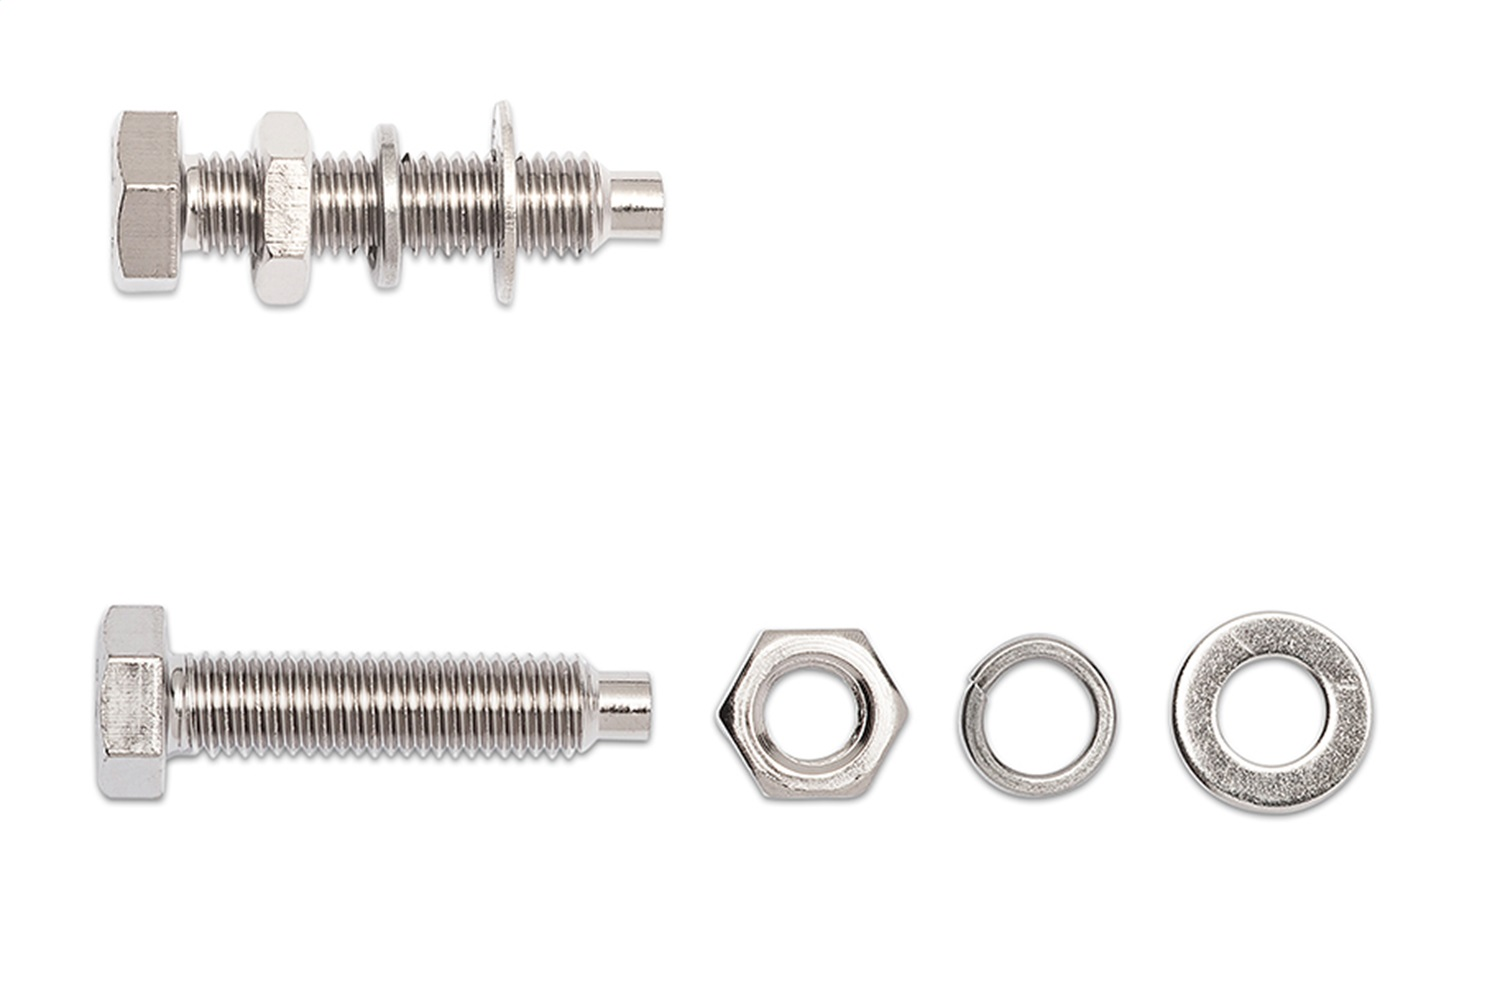 Rock Tamers RT052 Rock Tamers Replacement Parts